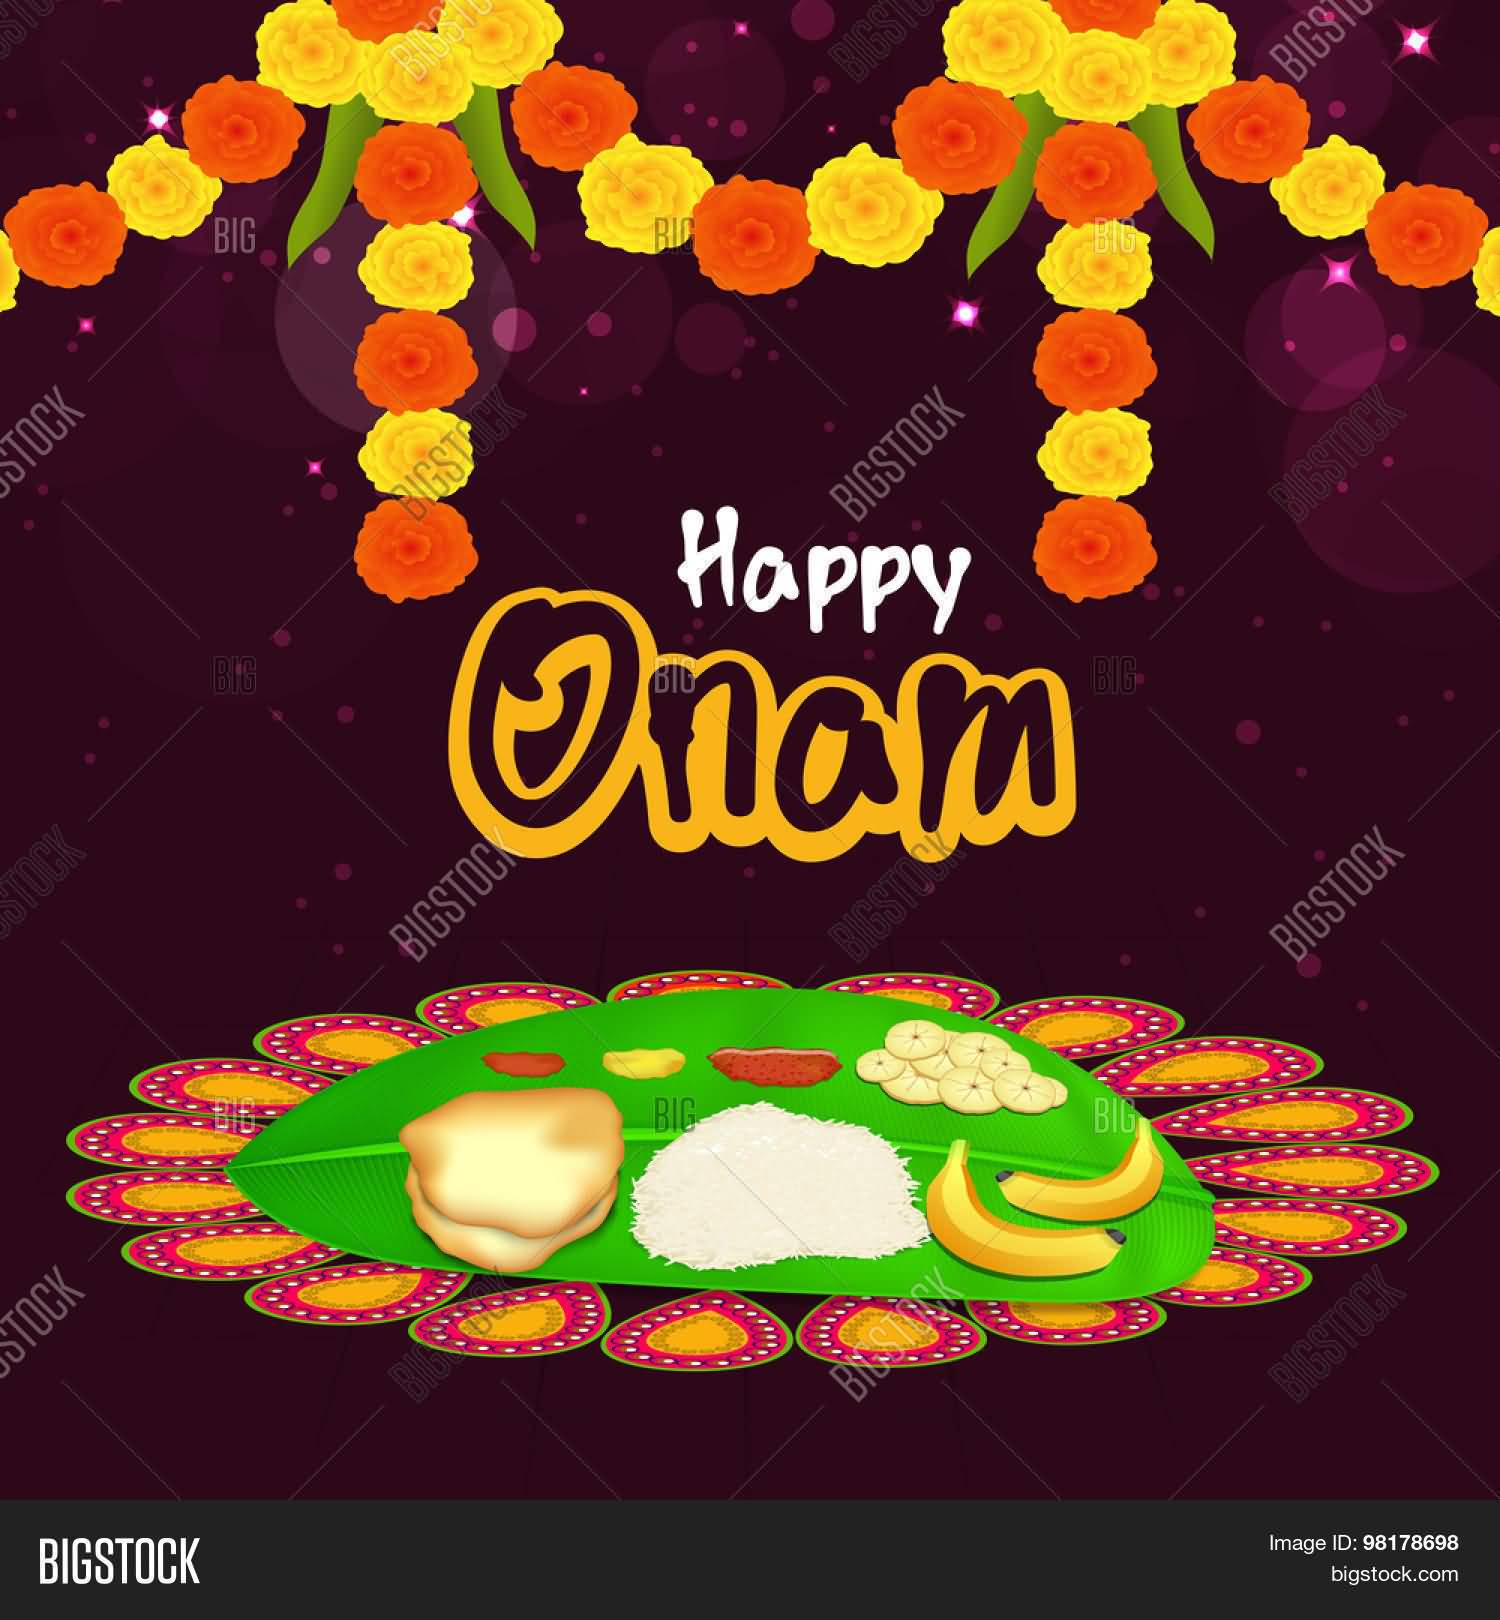 40+ Best Ideas About Onam Wishes And Greetings